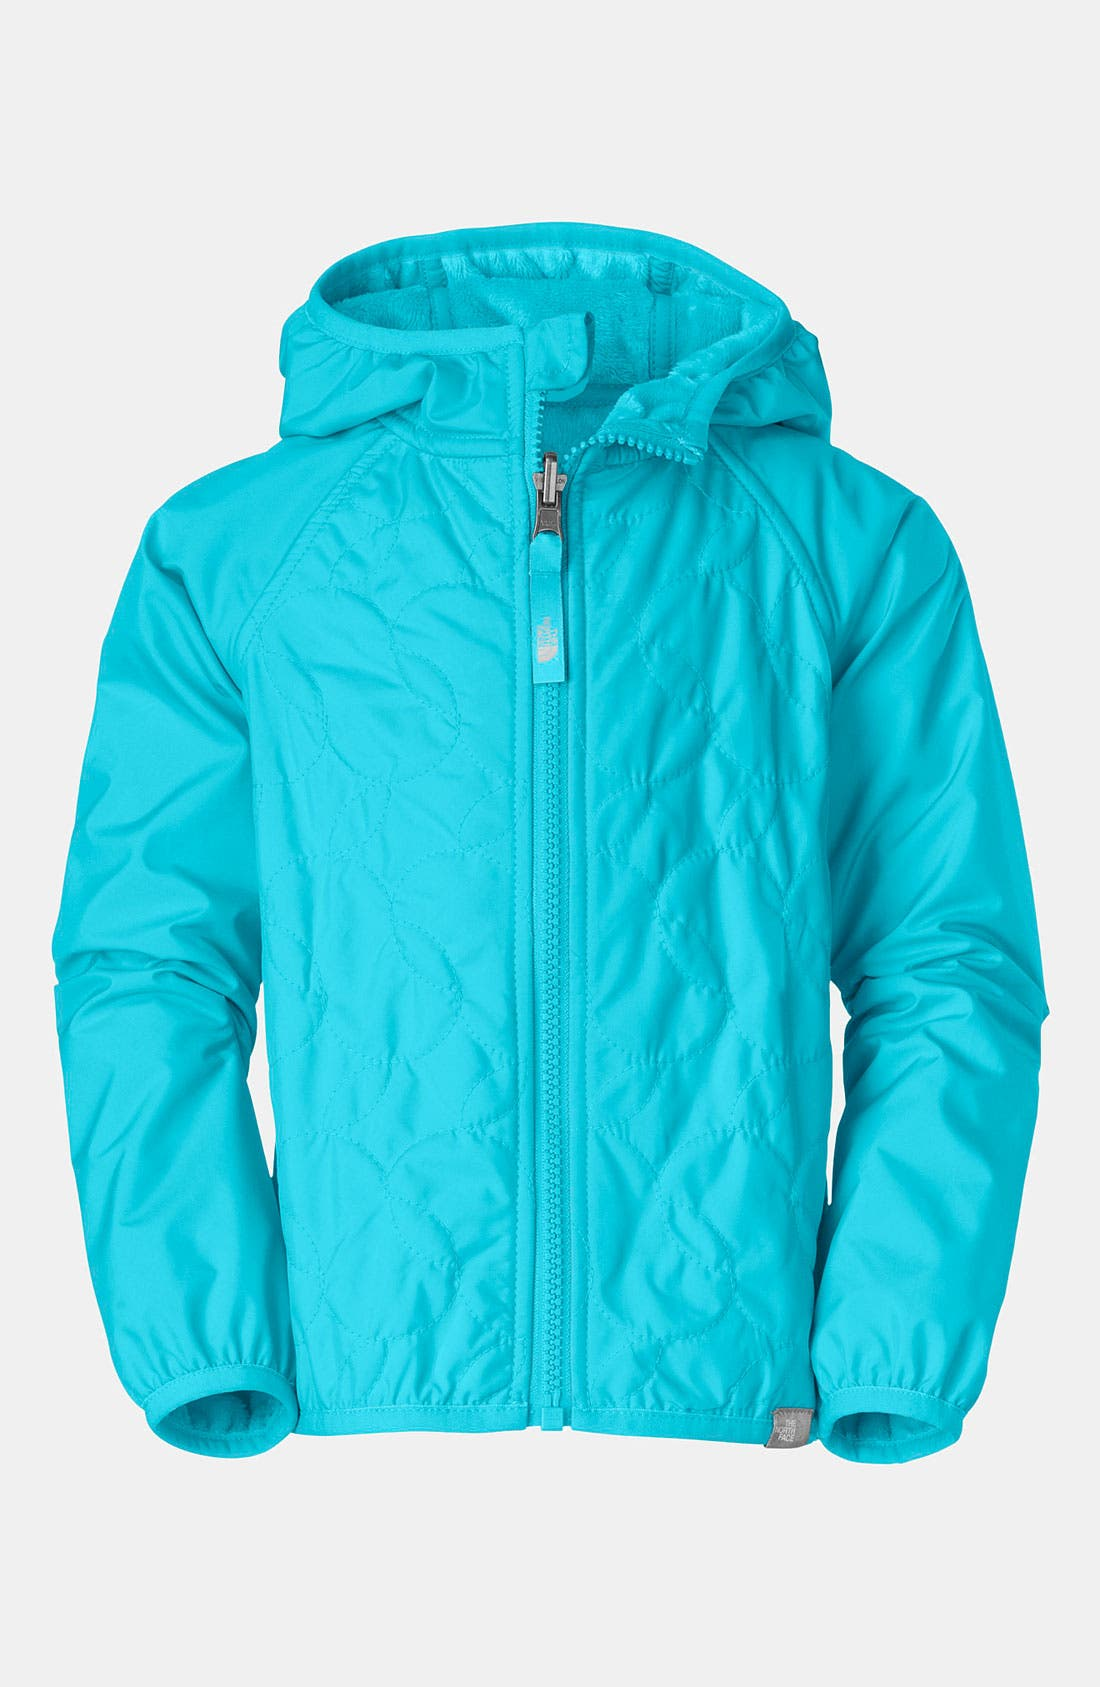 Main Image - The North Face 'Lil Breeze' Reversible Jacket (Toddler Girls)